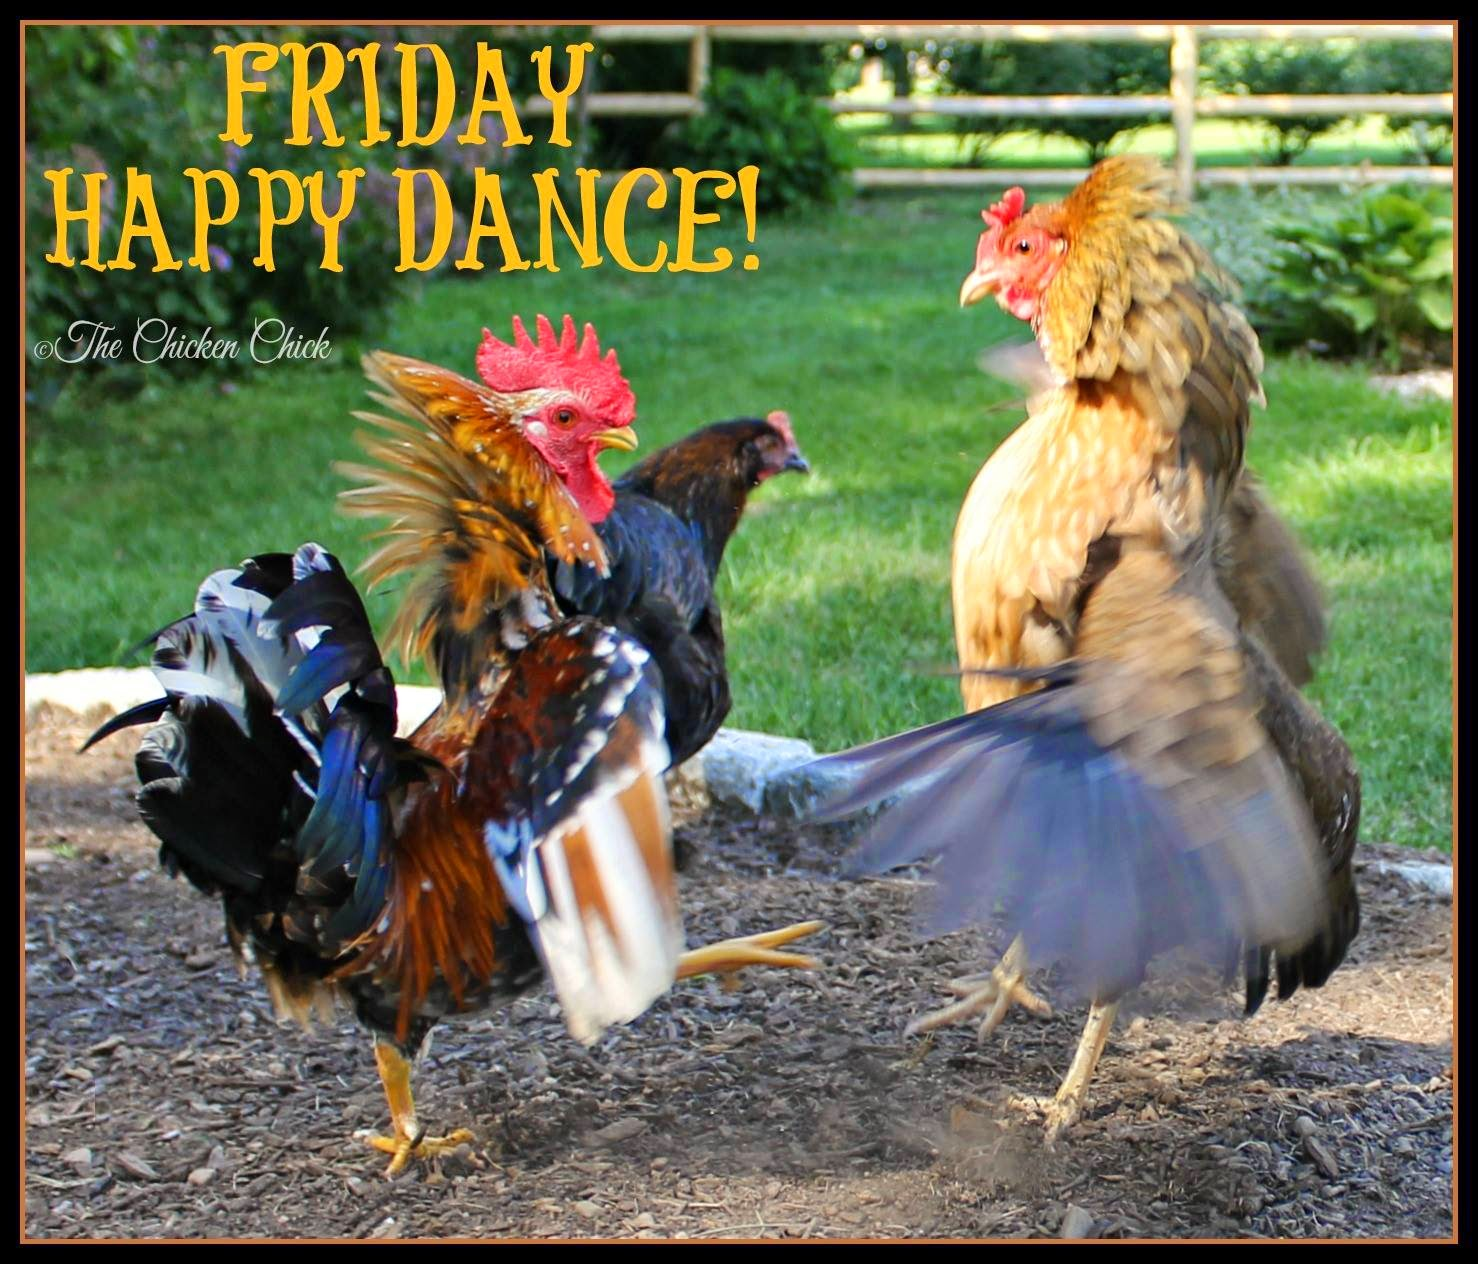 Friday Happy Dance!